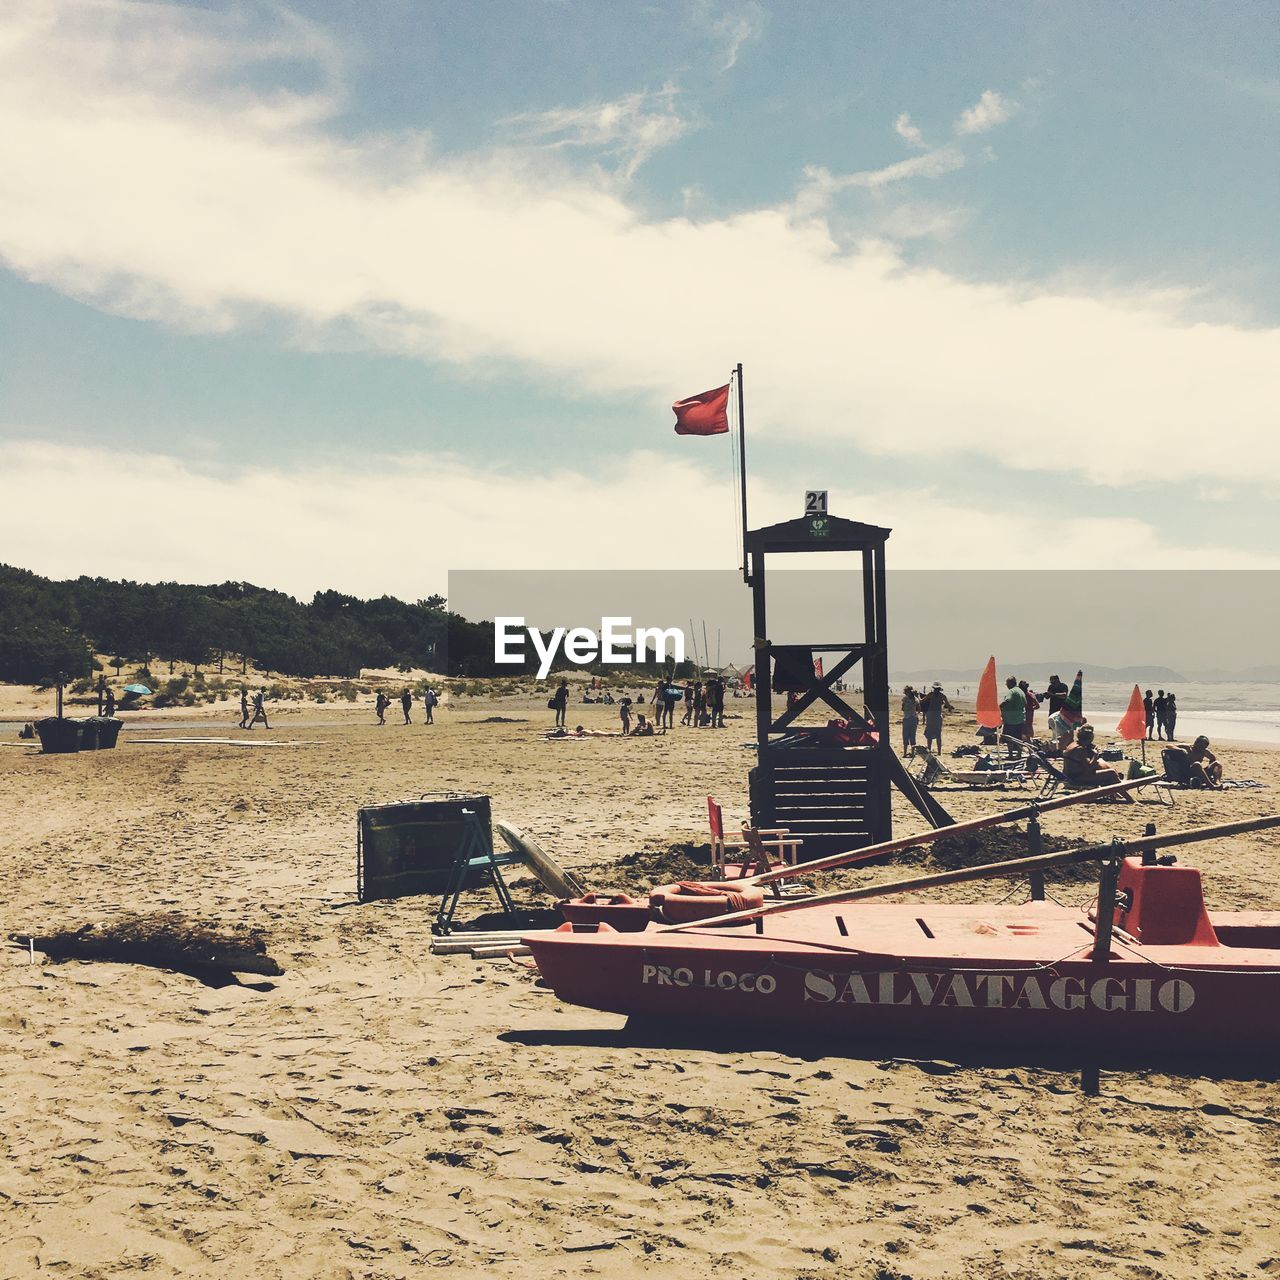 sand, beach, cloud - sky, sky, sea, flag, nature, water, day, outdoors, scenics, nautical vessel, beauty in nature, no people